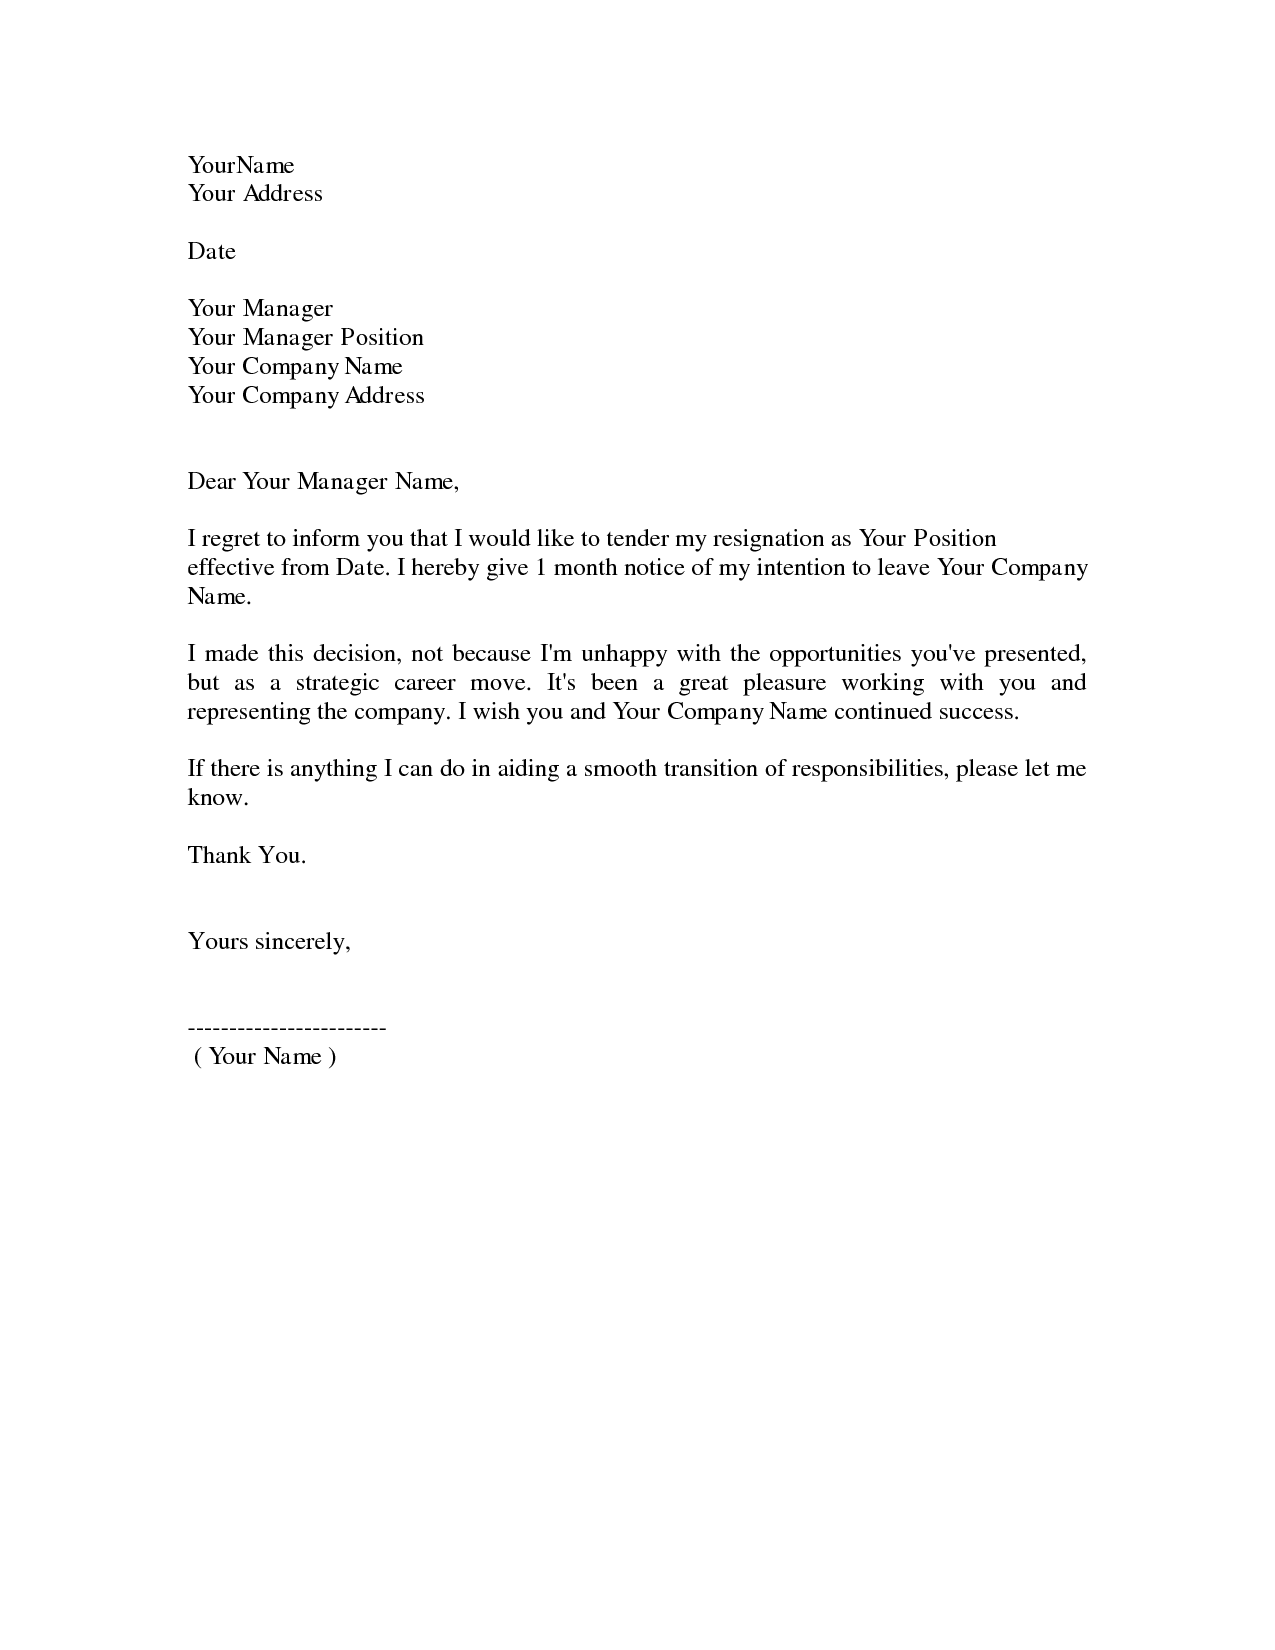 simple letter of resignation resignation letter samples 0009 ...